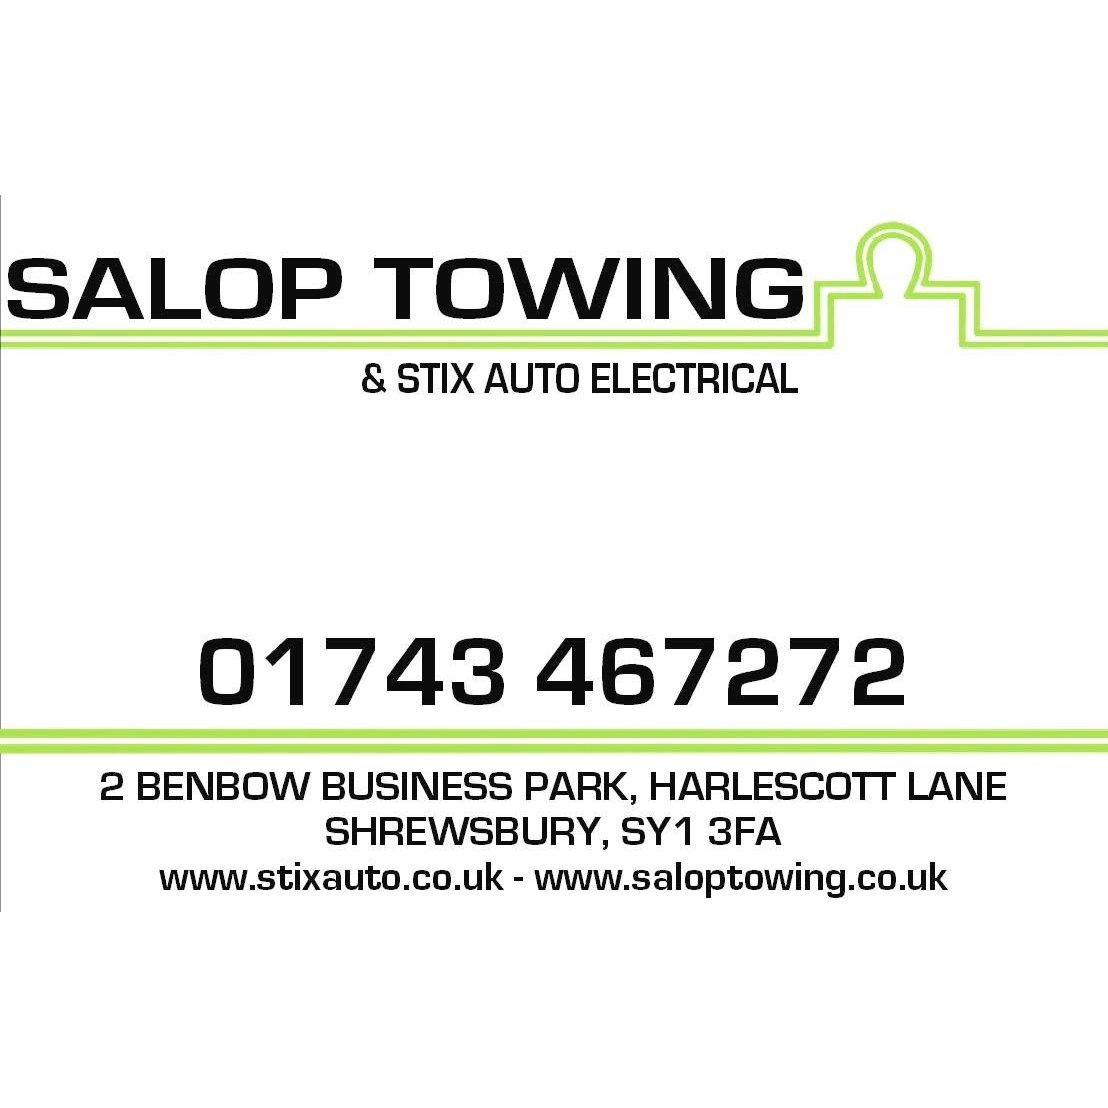 Salop Towing Ltd